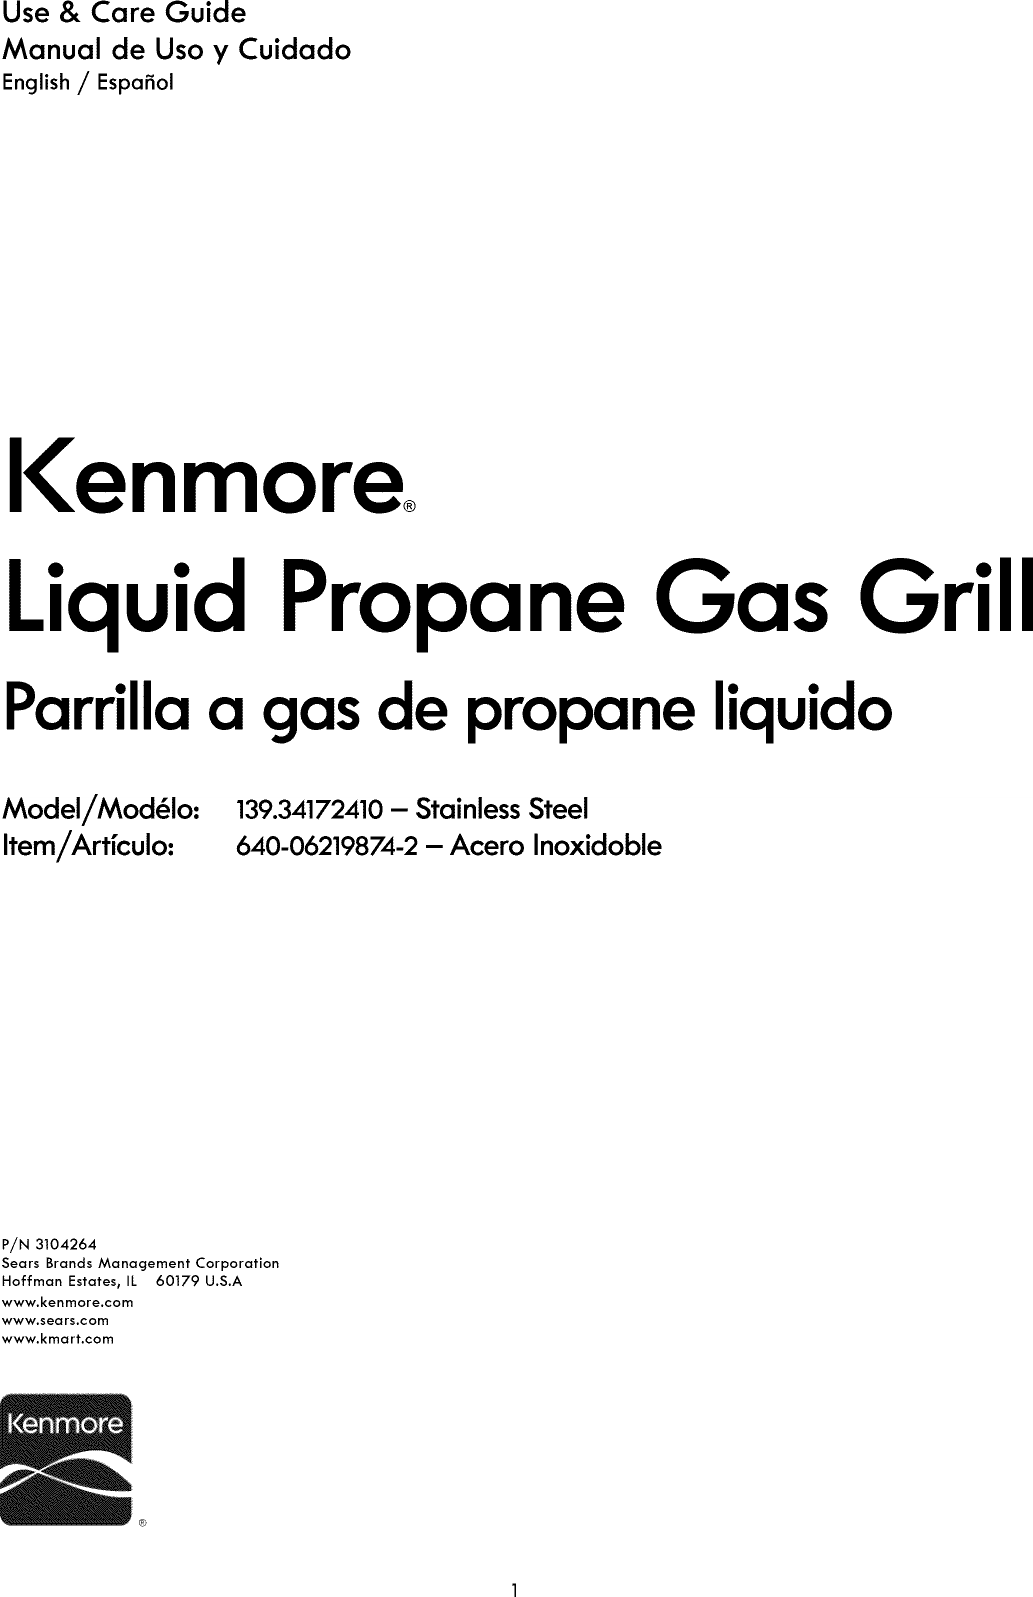 Kenmore 13934172410 User Manual GAS GRILL Manuals And